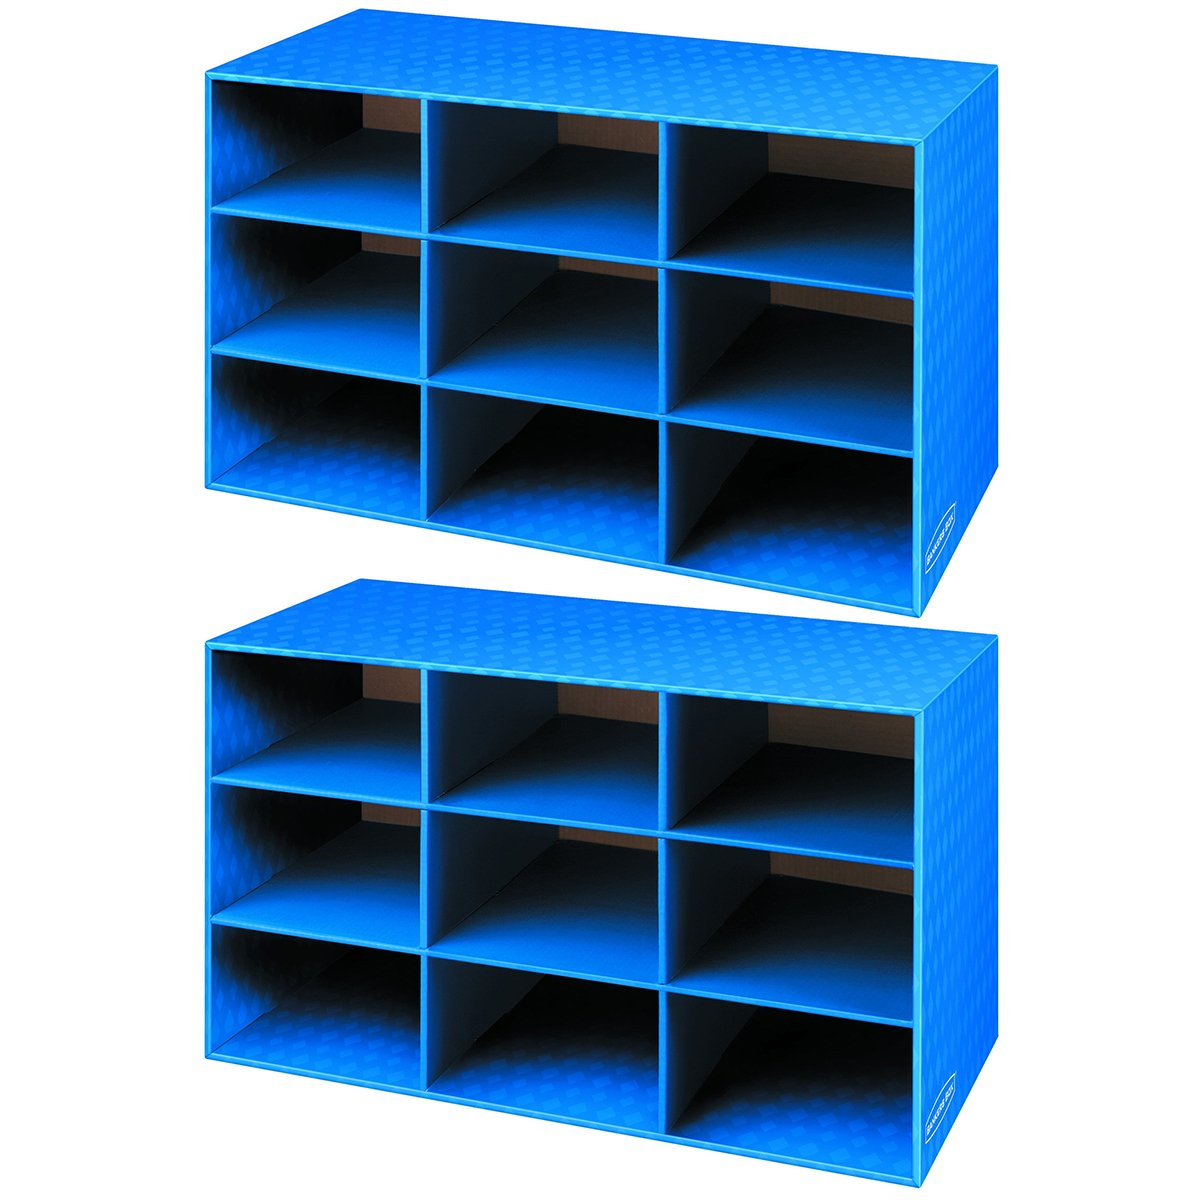 Bankers Box Classroom 9 Compartment Cubby Storage, 2 Pack